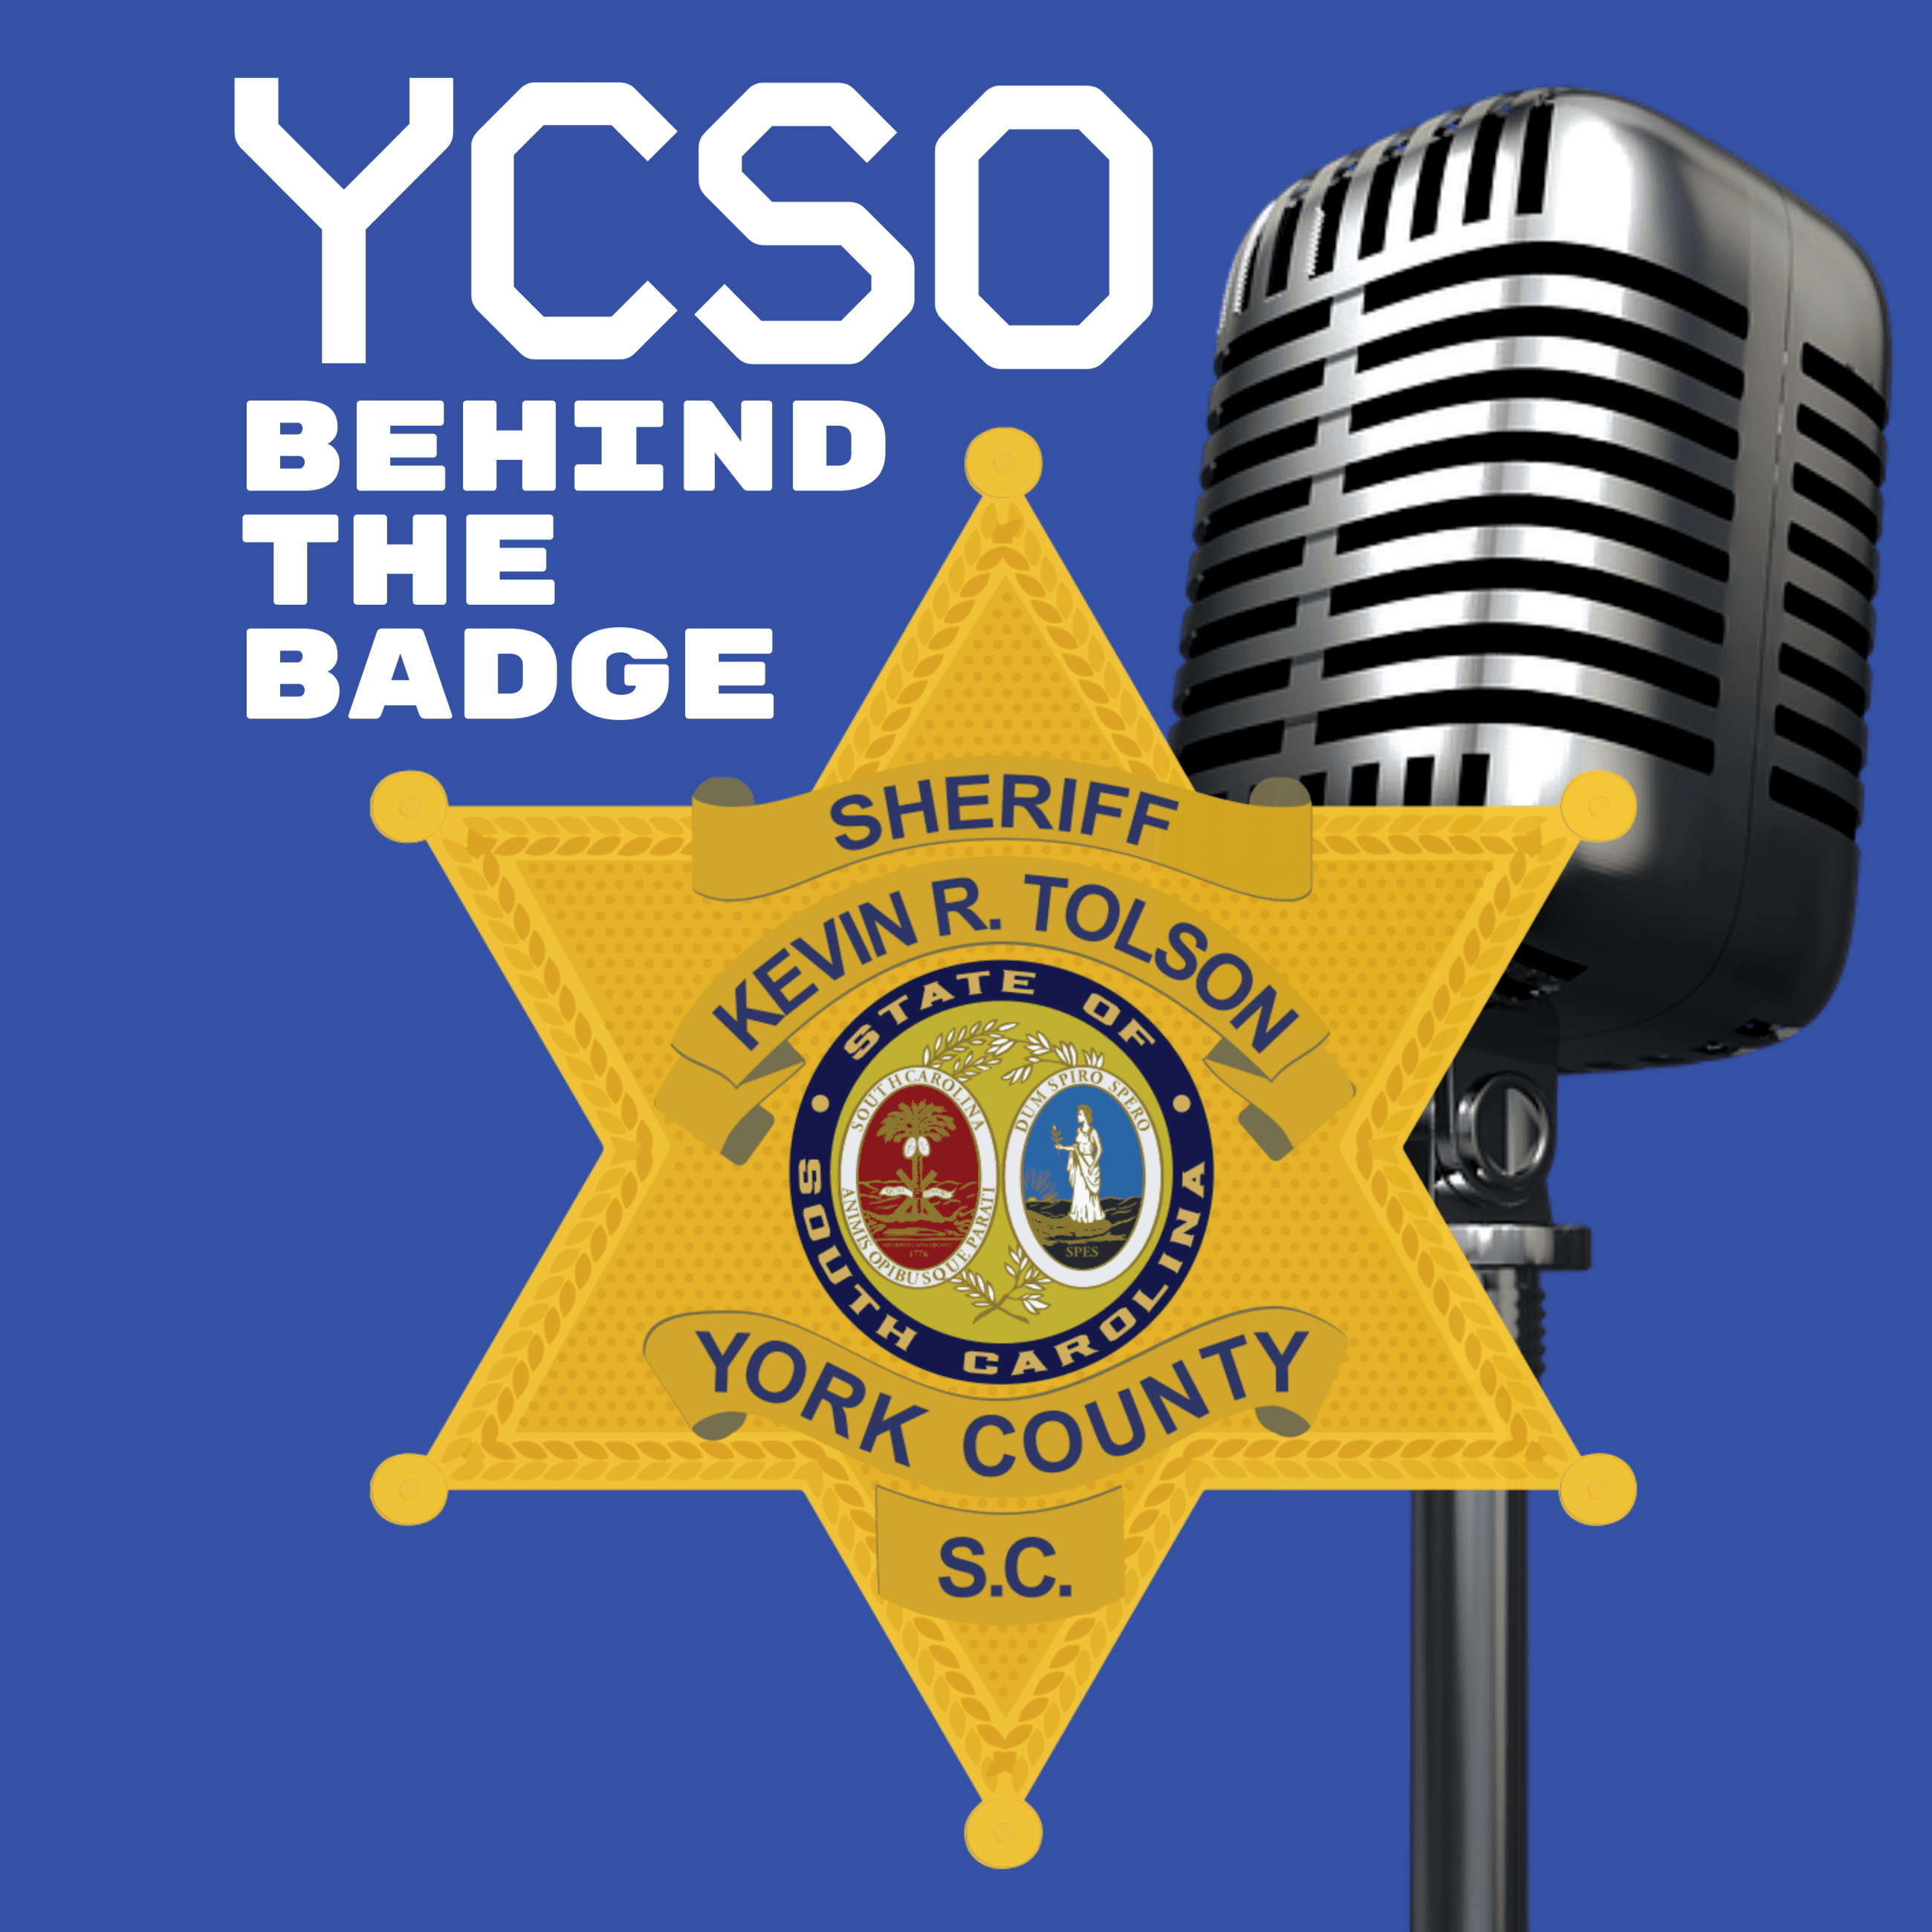 YCSO Behind the Badge Podcast Graphic Blue with a microphone.